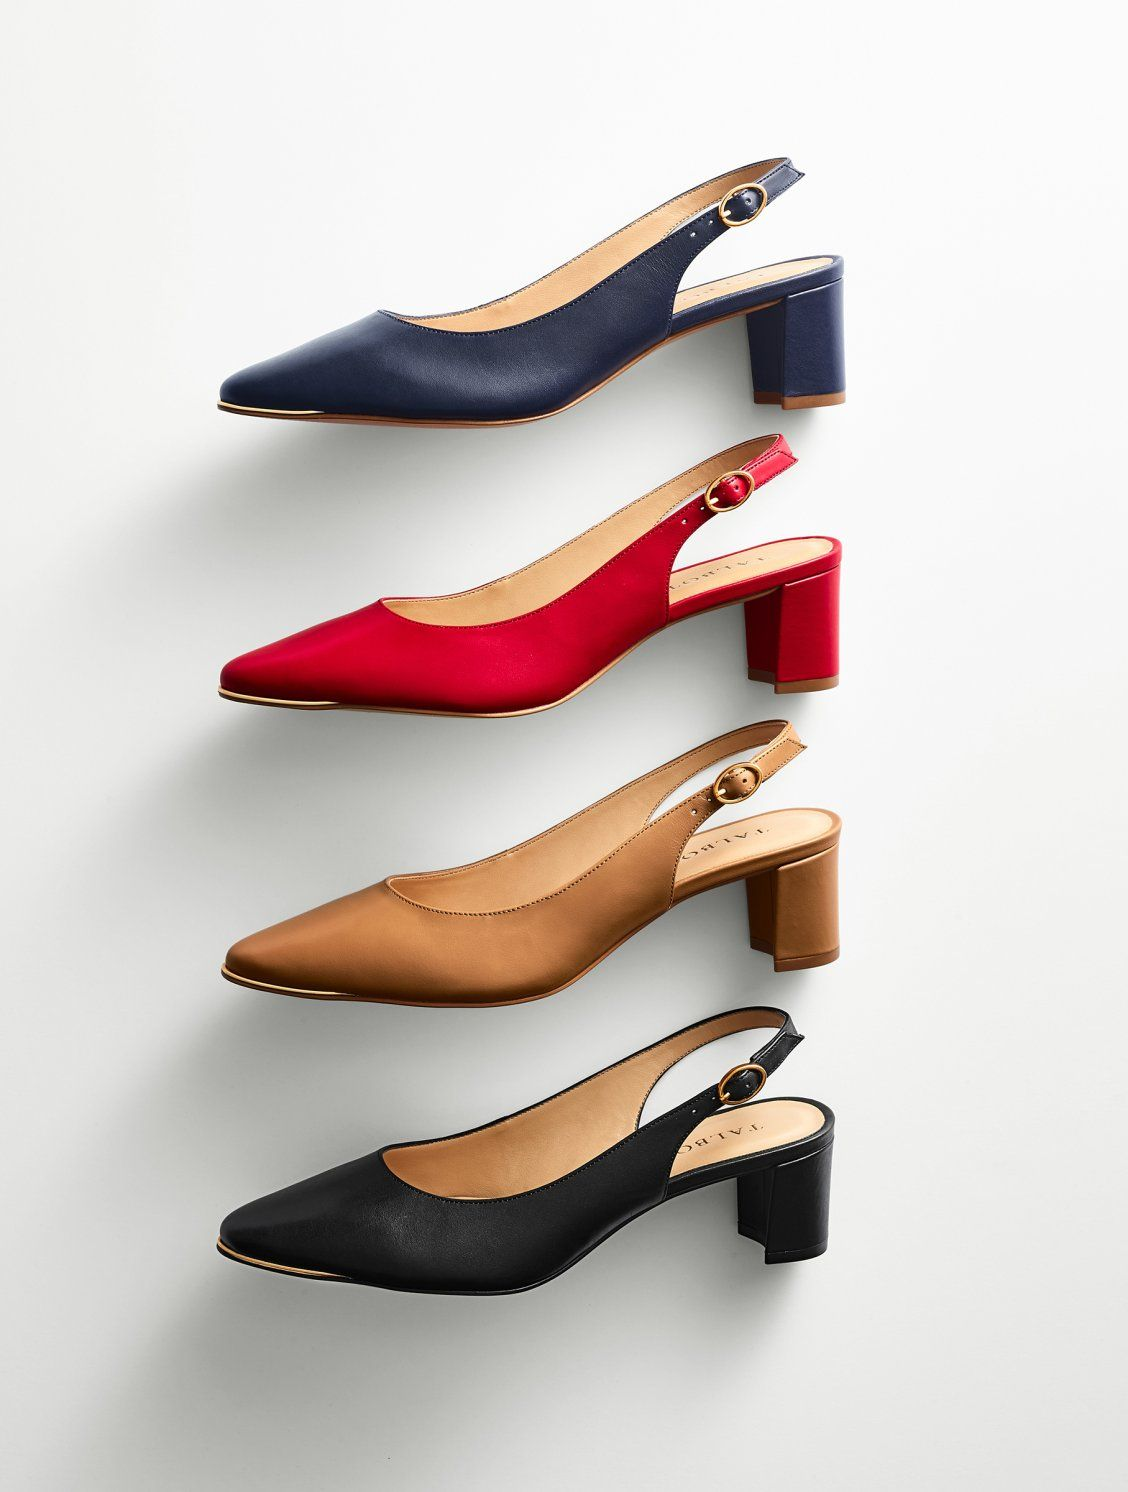 The Just Right Heel Height On These Classic Slingback Pumps Will Comfort Your Feet Soft Nappa Leather And Gold Toe Detai Heels High Heel Dress Shoes Slingback [ 1492 x 1128 Pixel ]